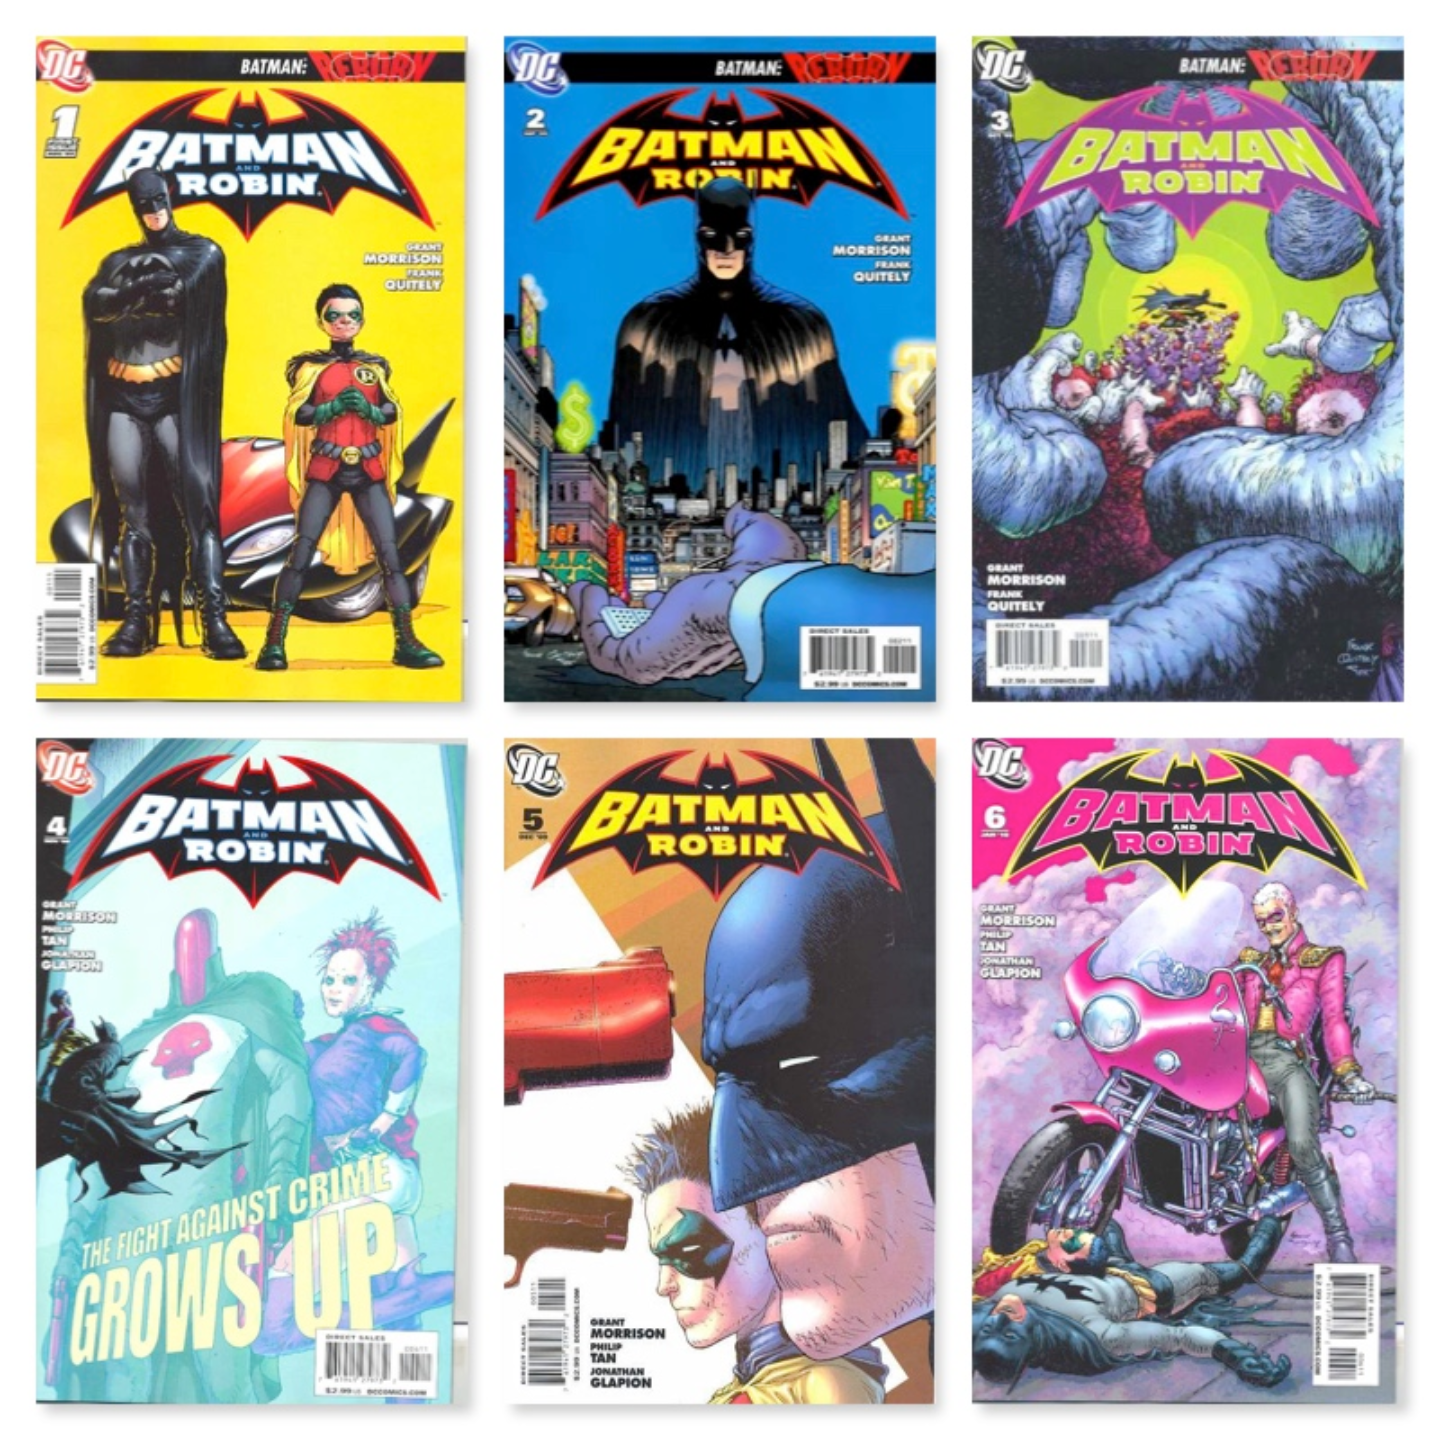 BATMAN AND ROBIN #1 - #18 (KEY COLLECTION)